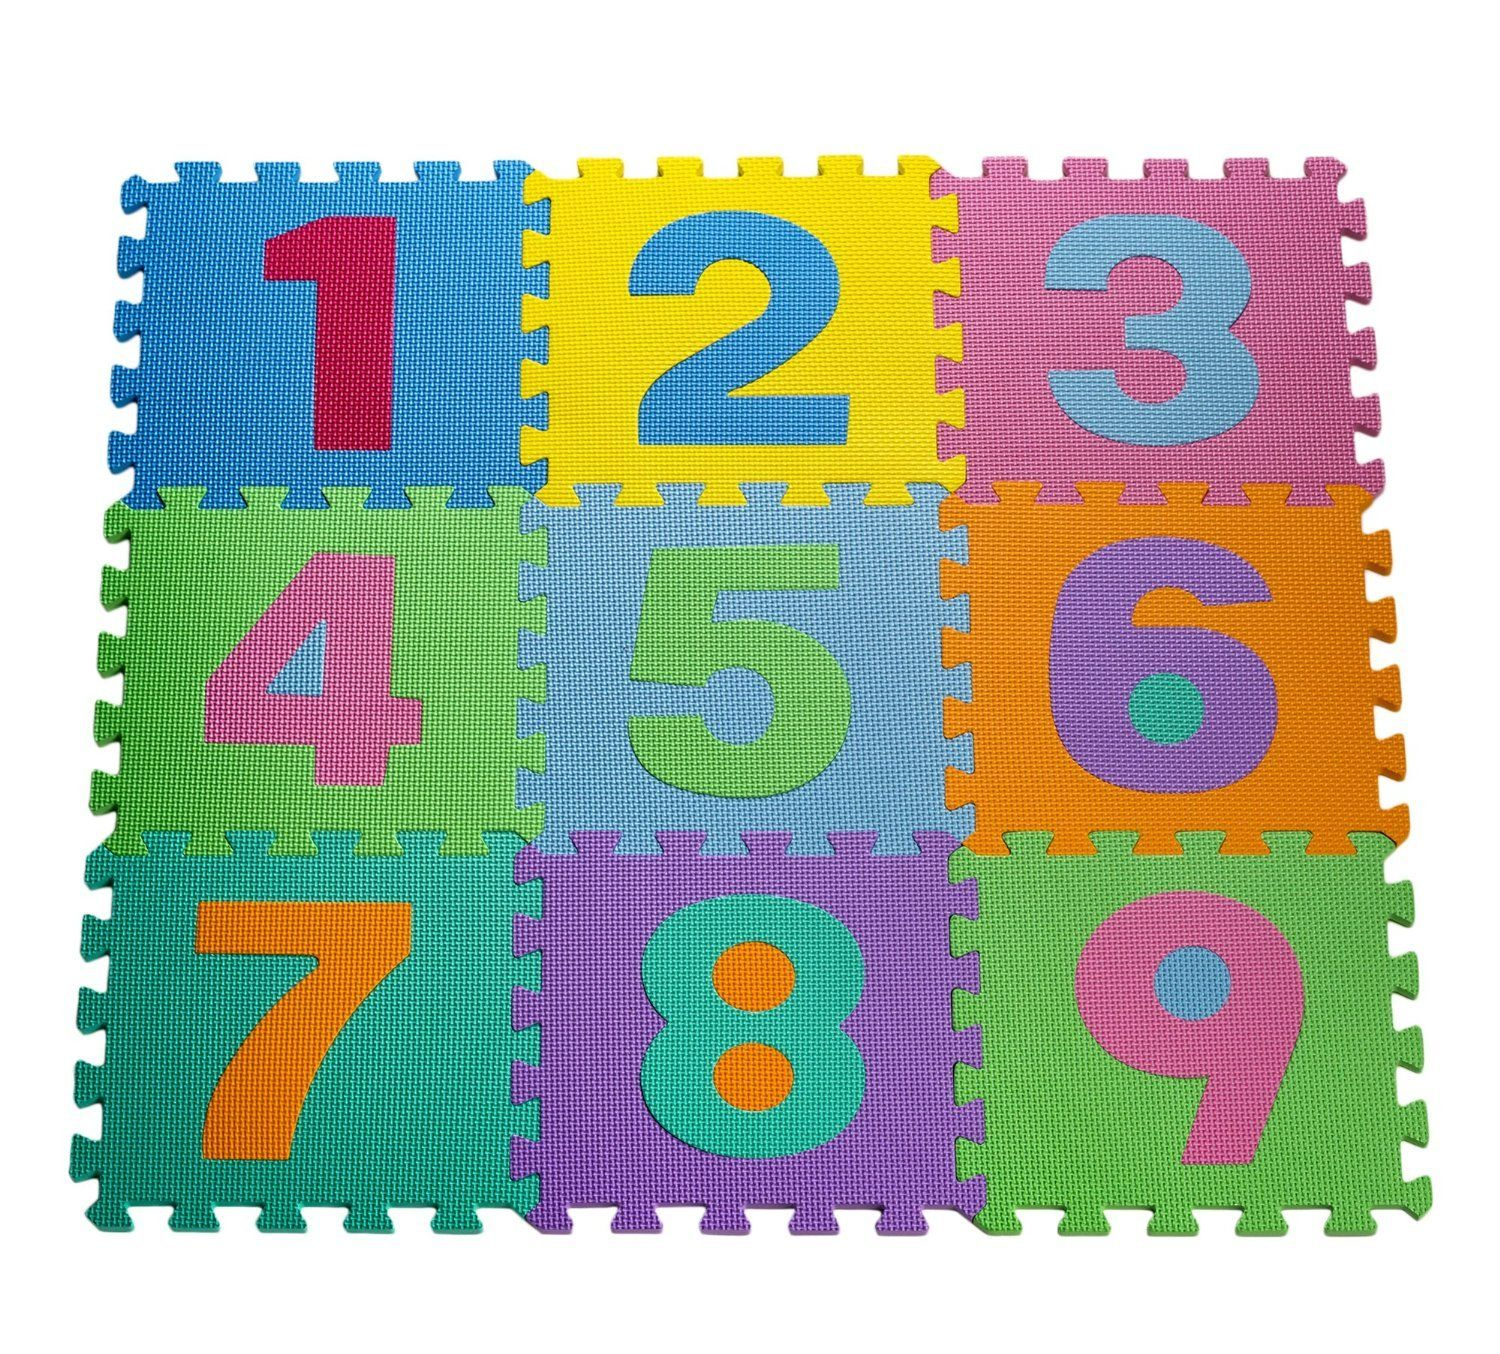 Kid's Multicolored Numbers Puzzle Play Mat ONLY $12.00!! - http://supersavingsman.com/kids-multicolored-numbers-puzzle-play-mat-only-12-00/